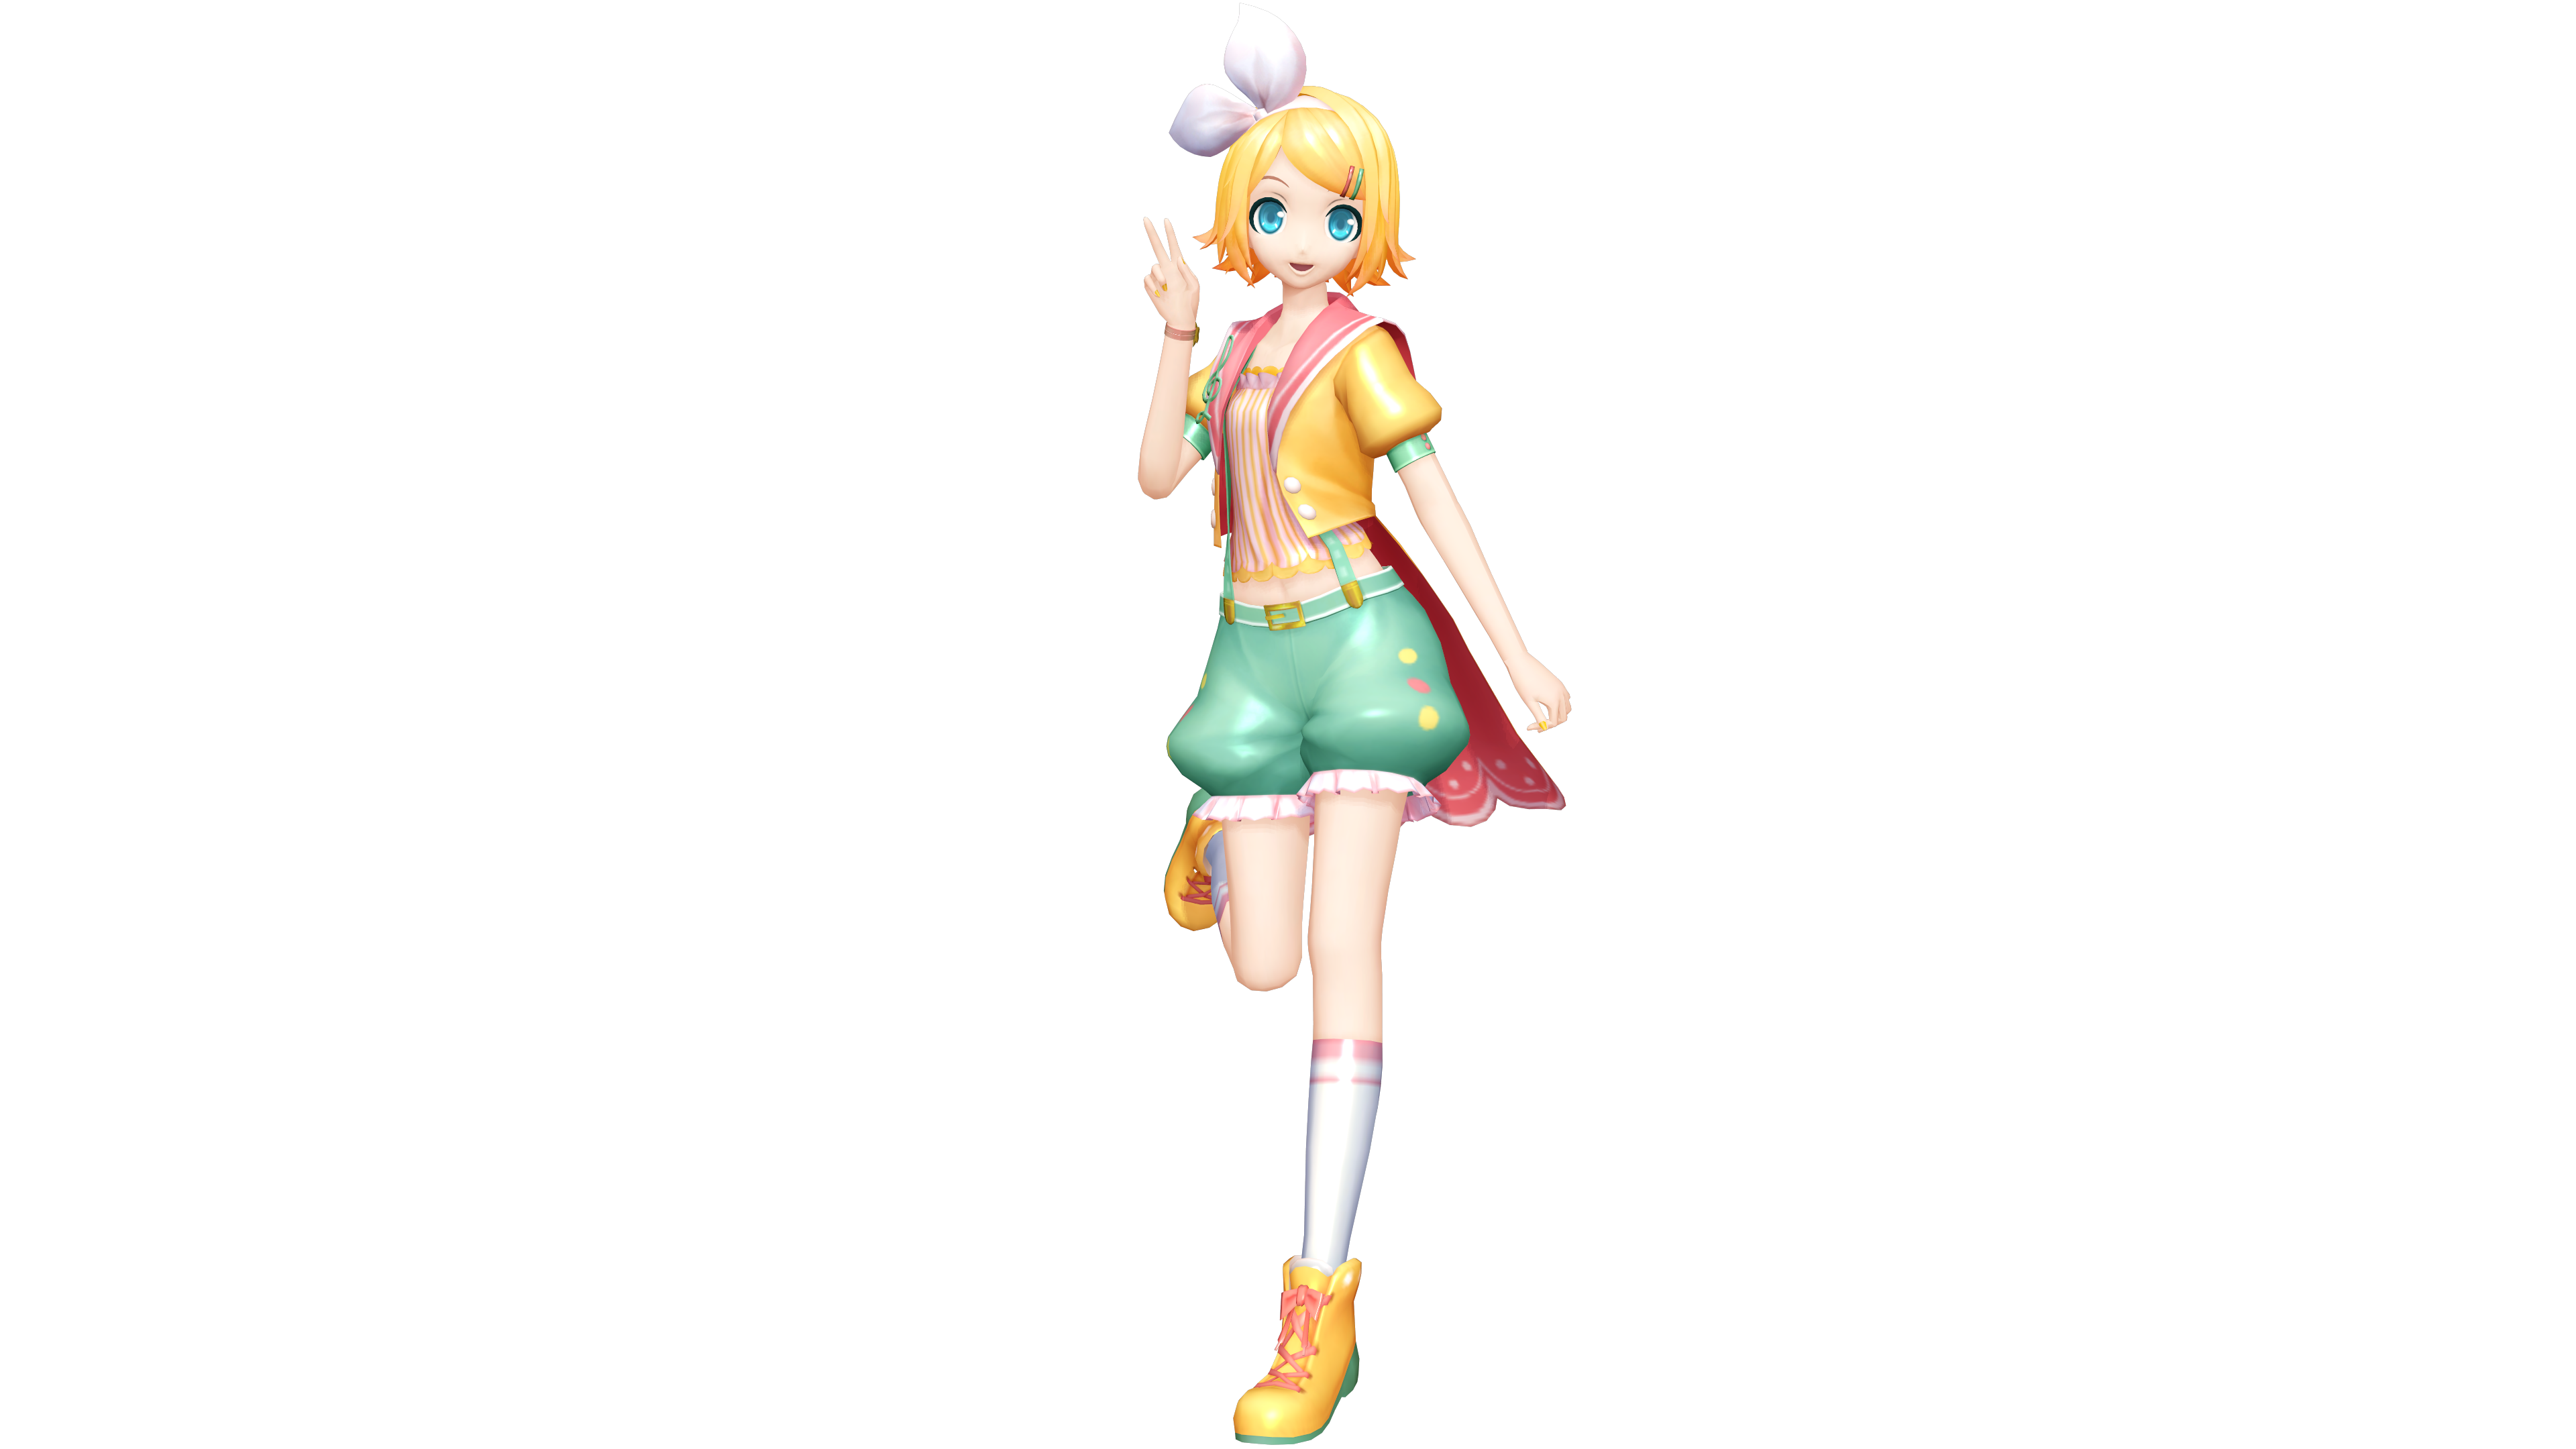 Project diva x lyrical star rin by luke flame on deviantart - Kagamine rin project diva ...